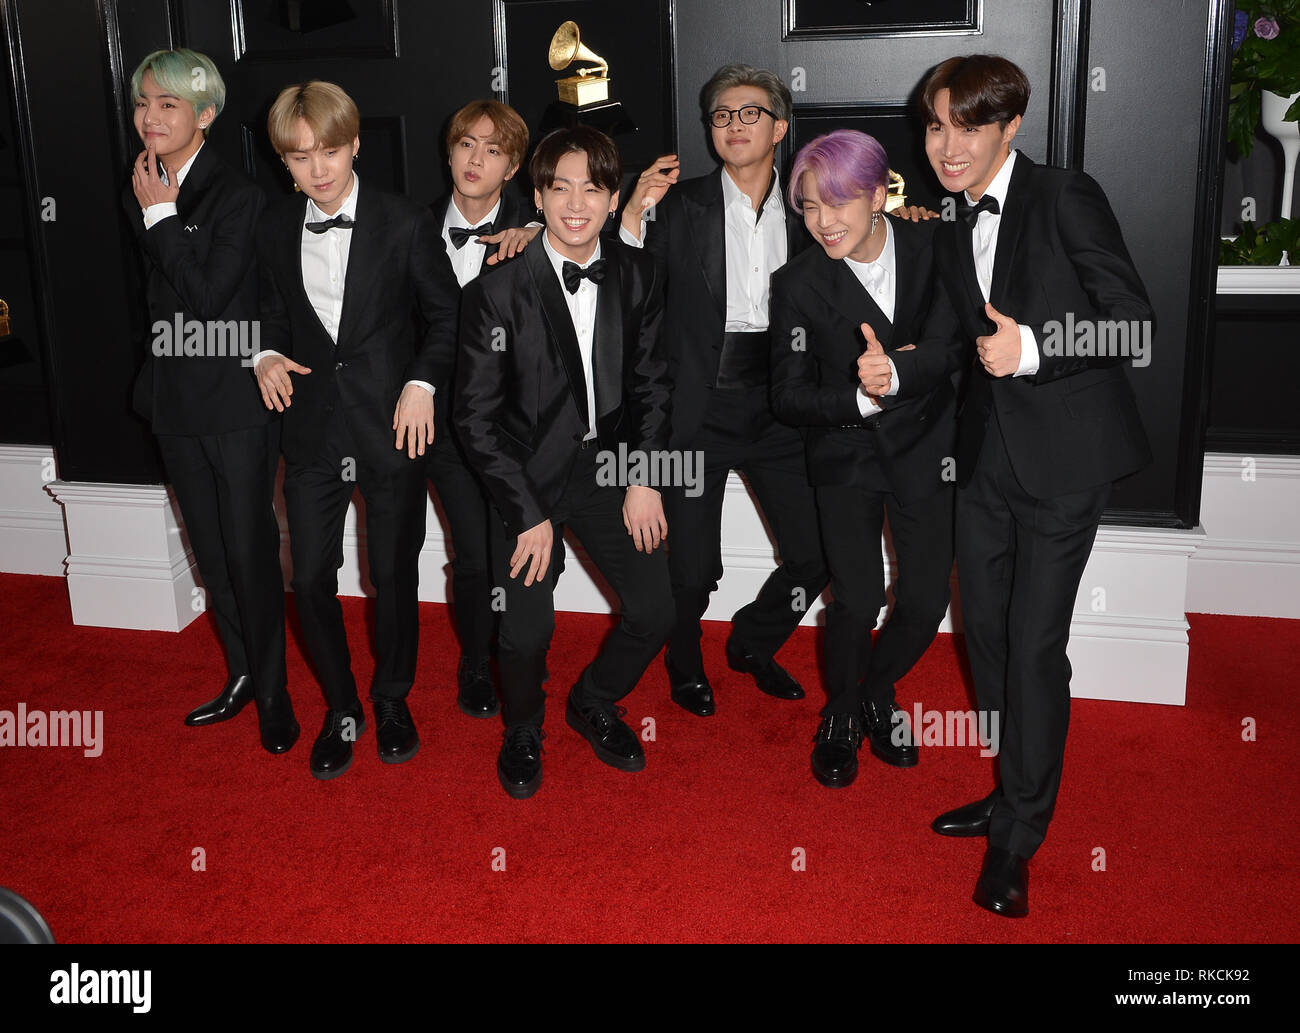 Los Angeles, Ca, USA. 10th Feb, 2019. BTS at the 61st Annual Grammy Awards at the Staples Center in Los Angeles, California on February 10, 2019. Credit: Faye Sadou/Media Punch/Alamy Live News - Stock Image